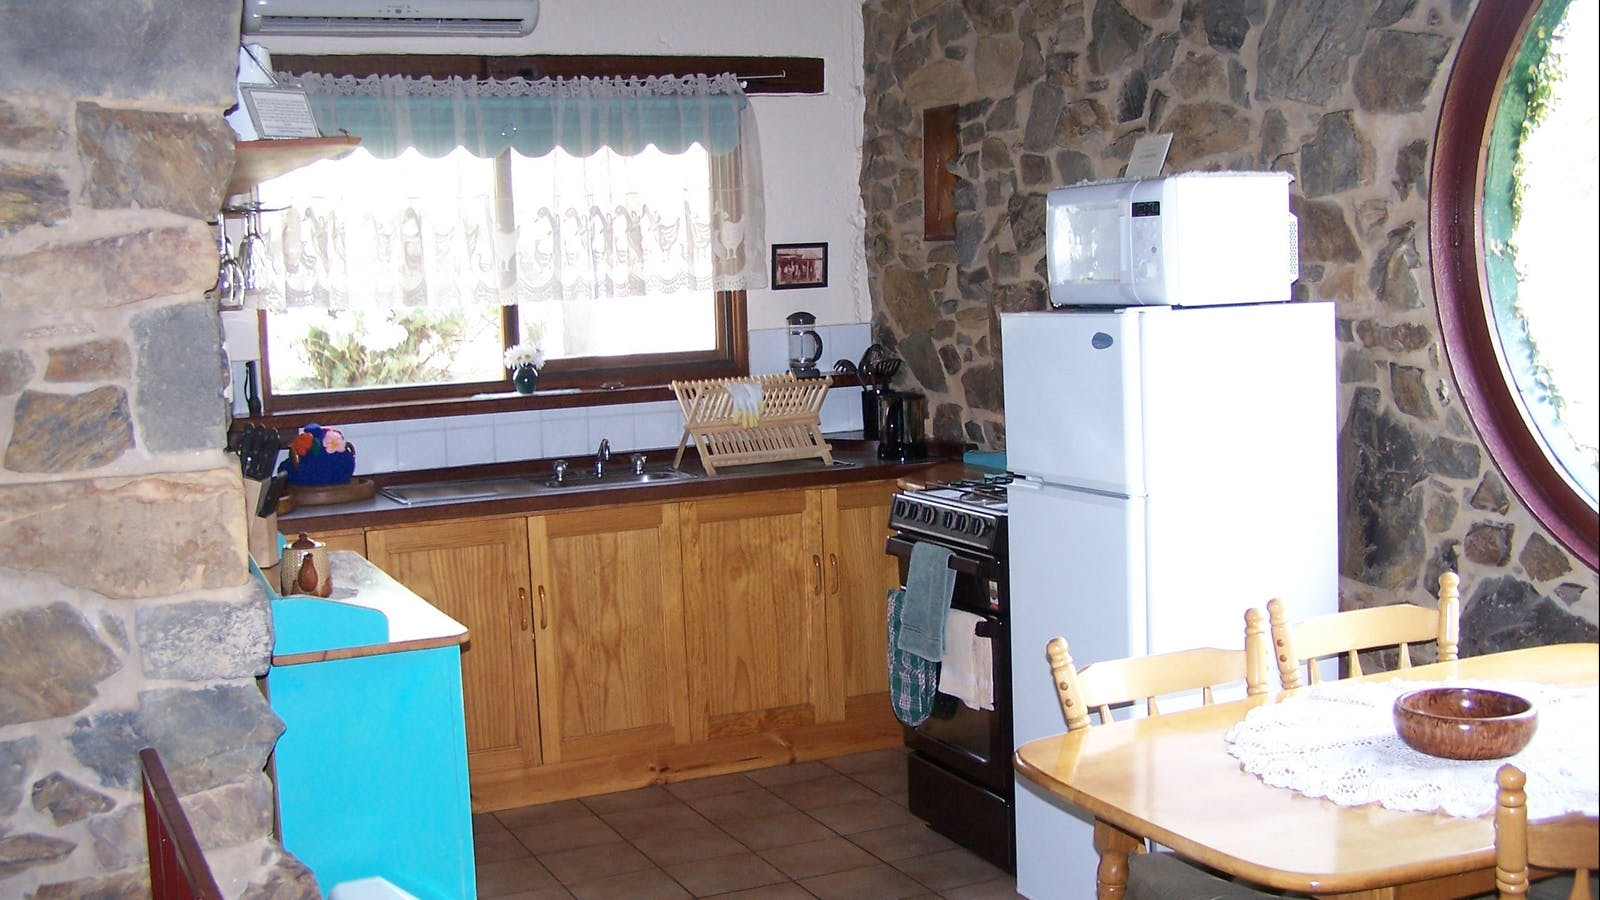 In the kitchen area